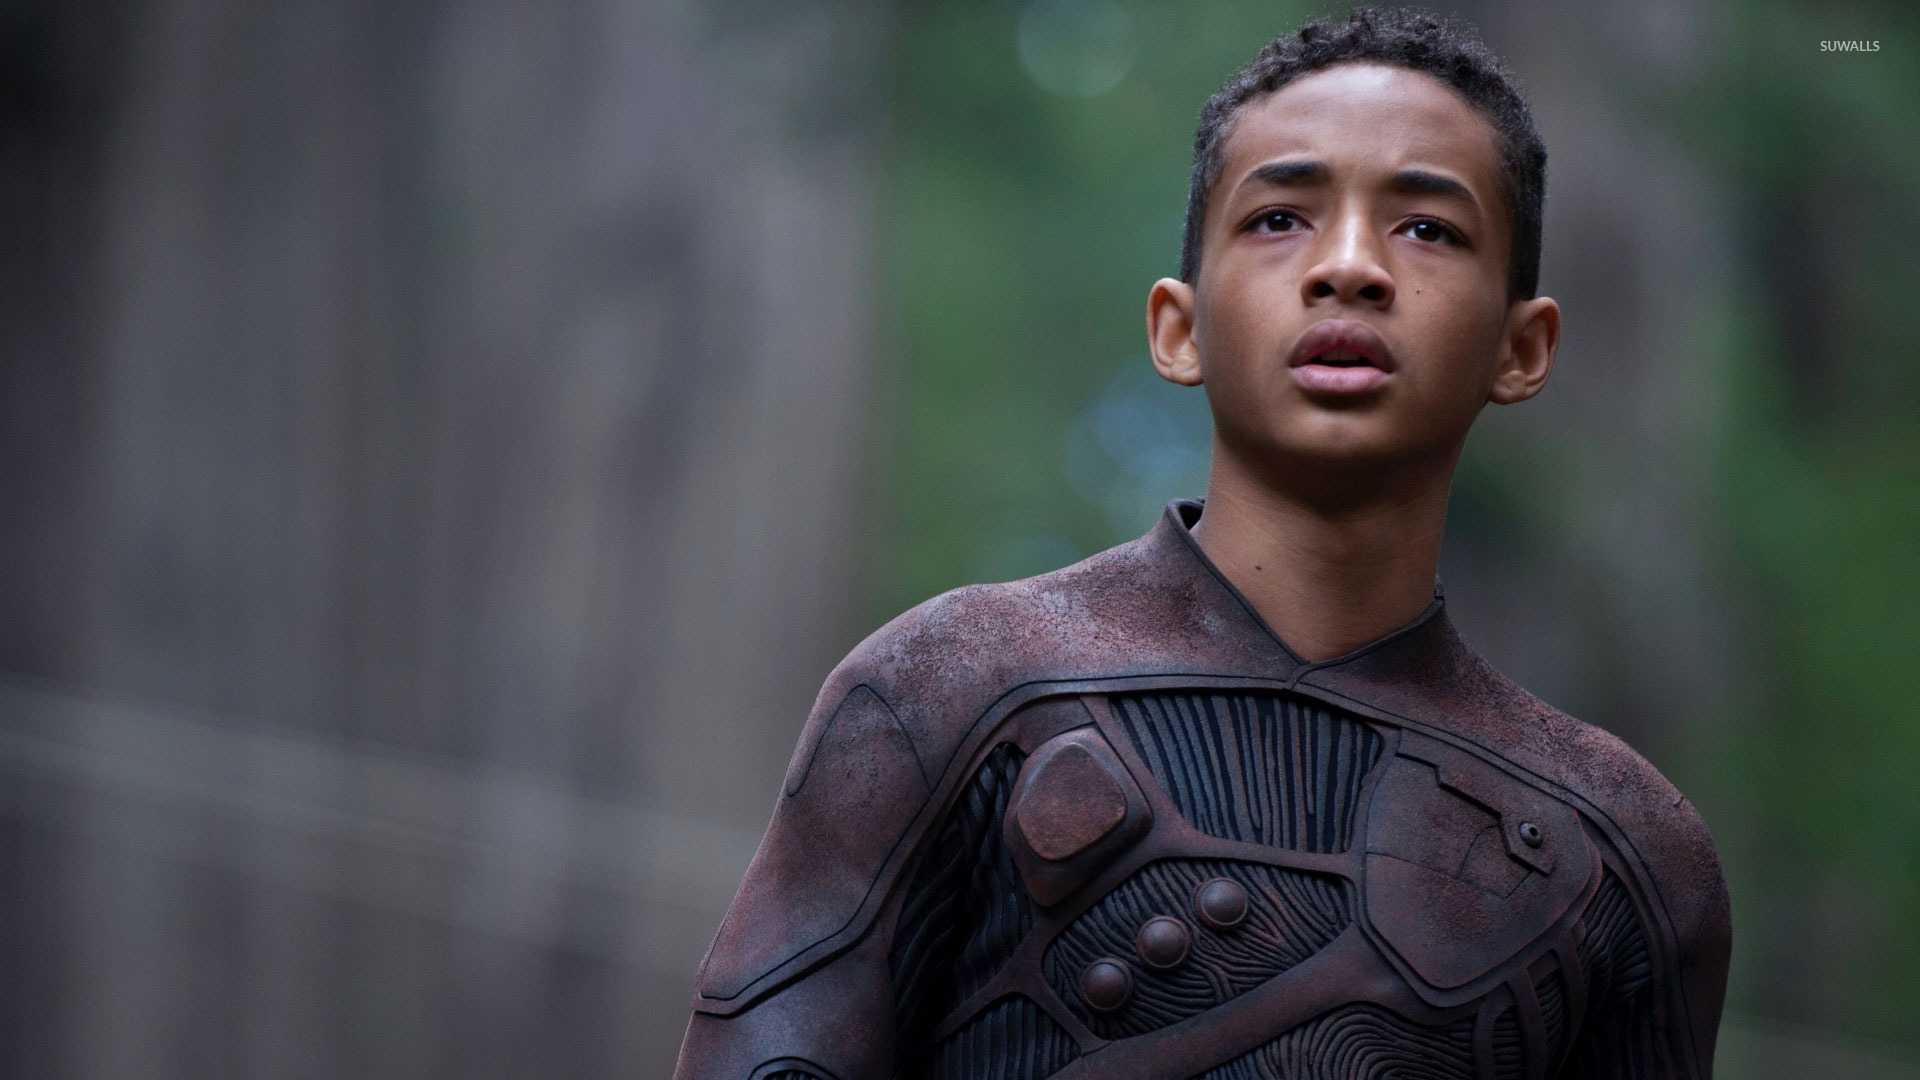 Kitai Raige   After Earth [2] wallpaper   Movie wallpapers   20676 1920x1080